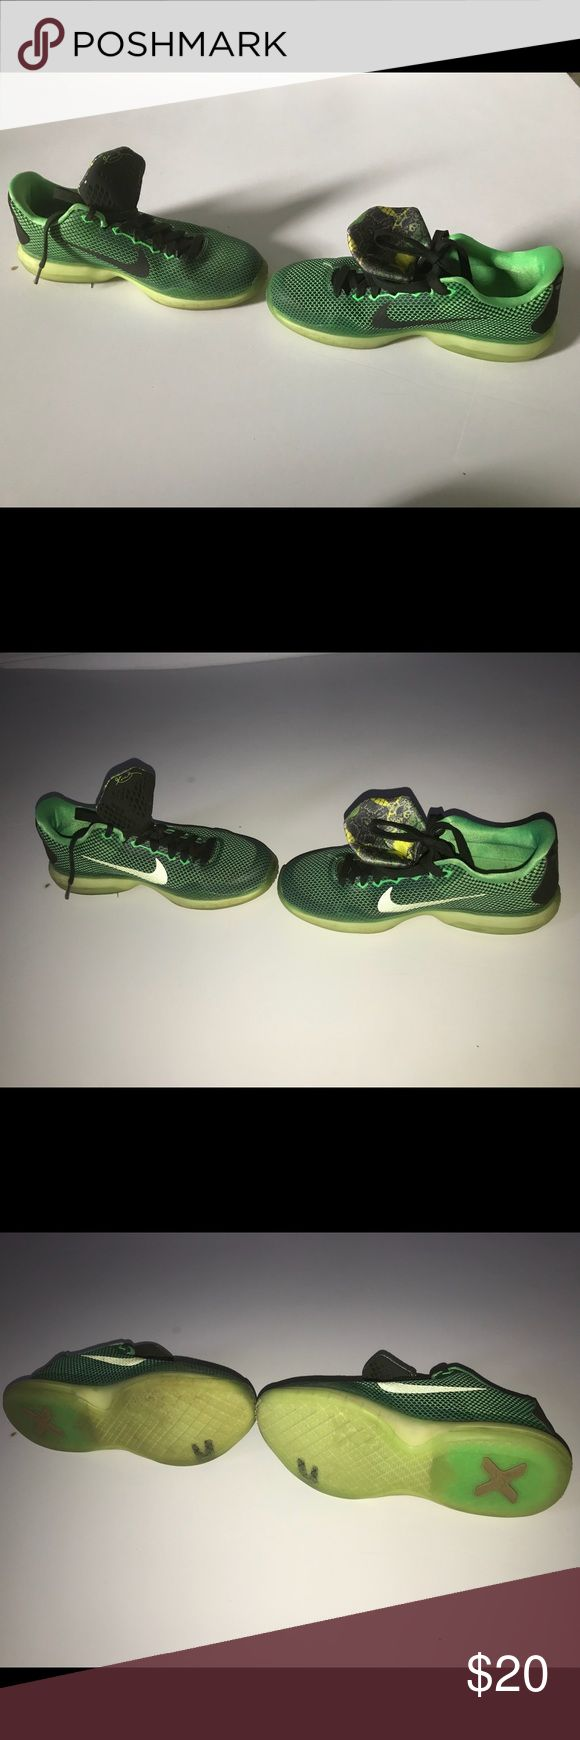 Nike Kobe lime green and black Nike Kobe sneakers lime green black with hints of yellow Nike Shoes Sneakers